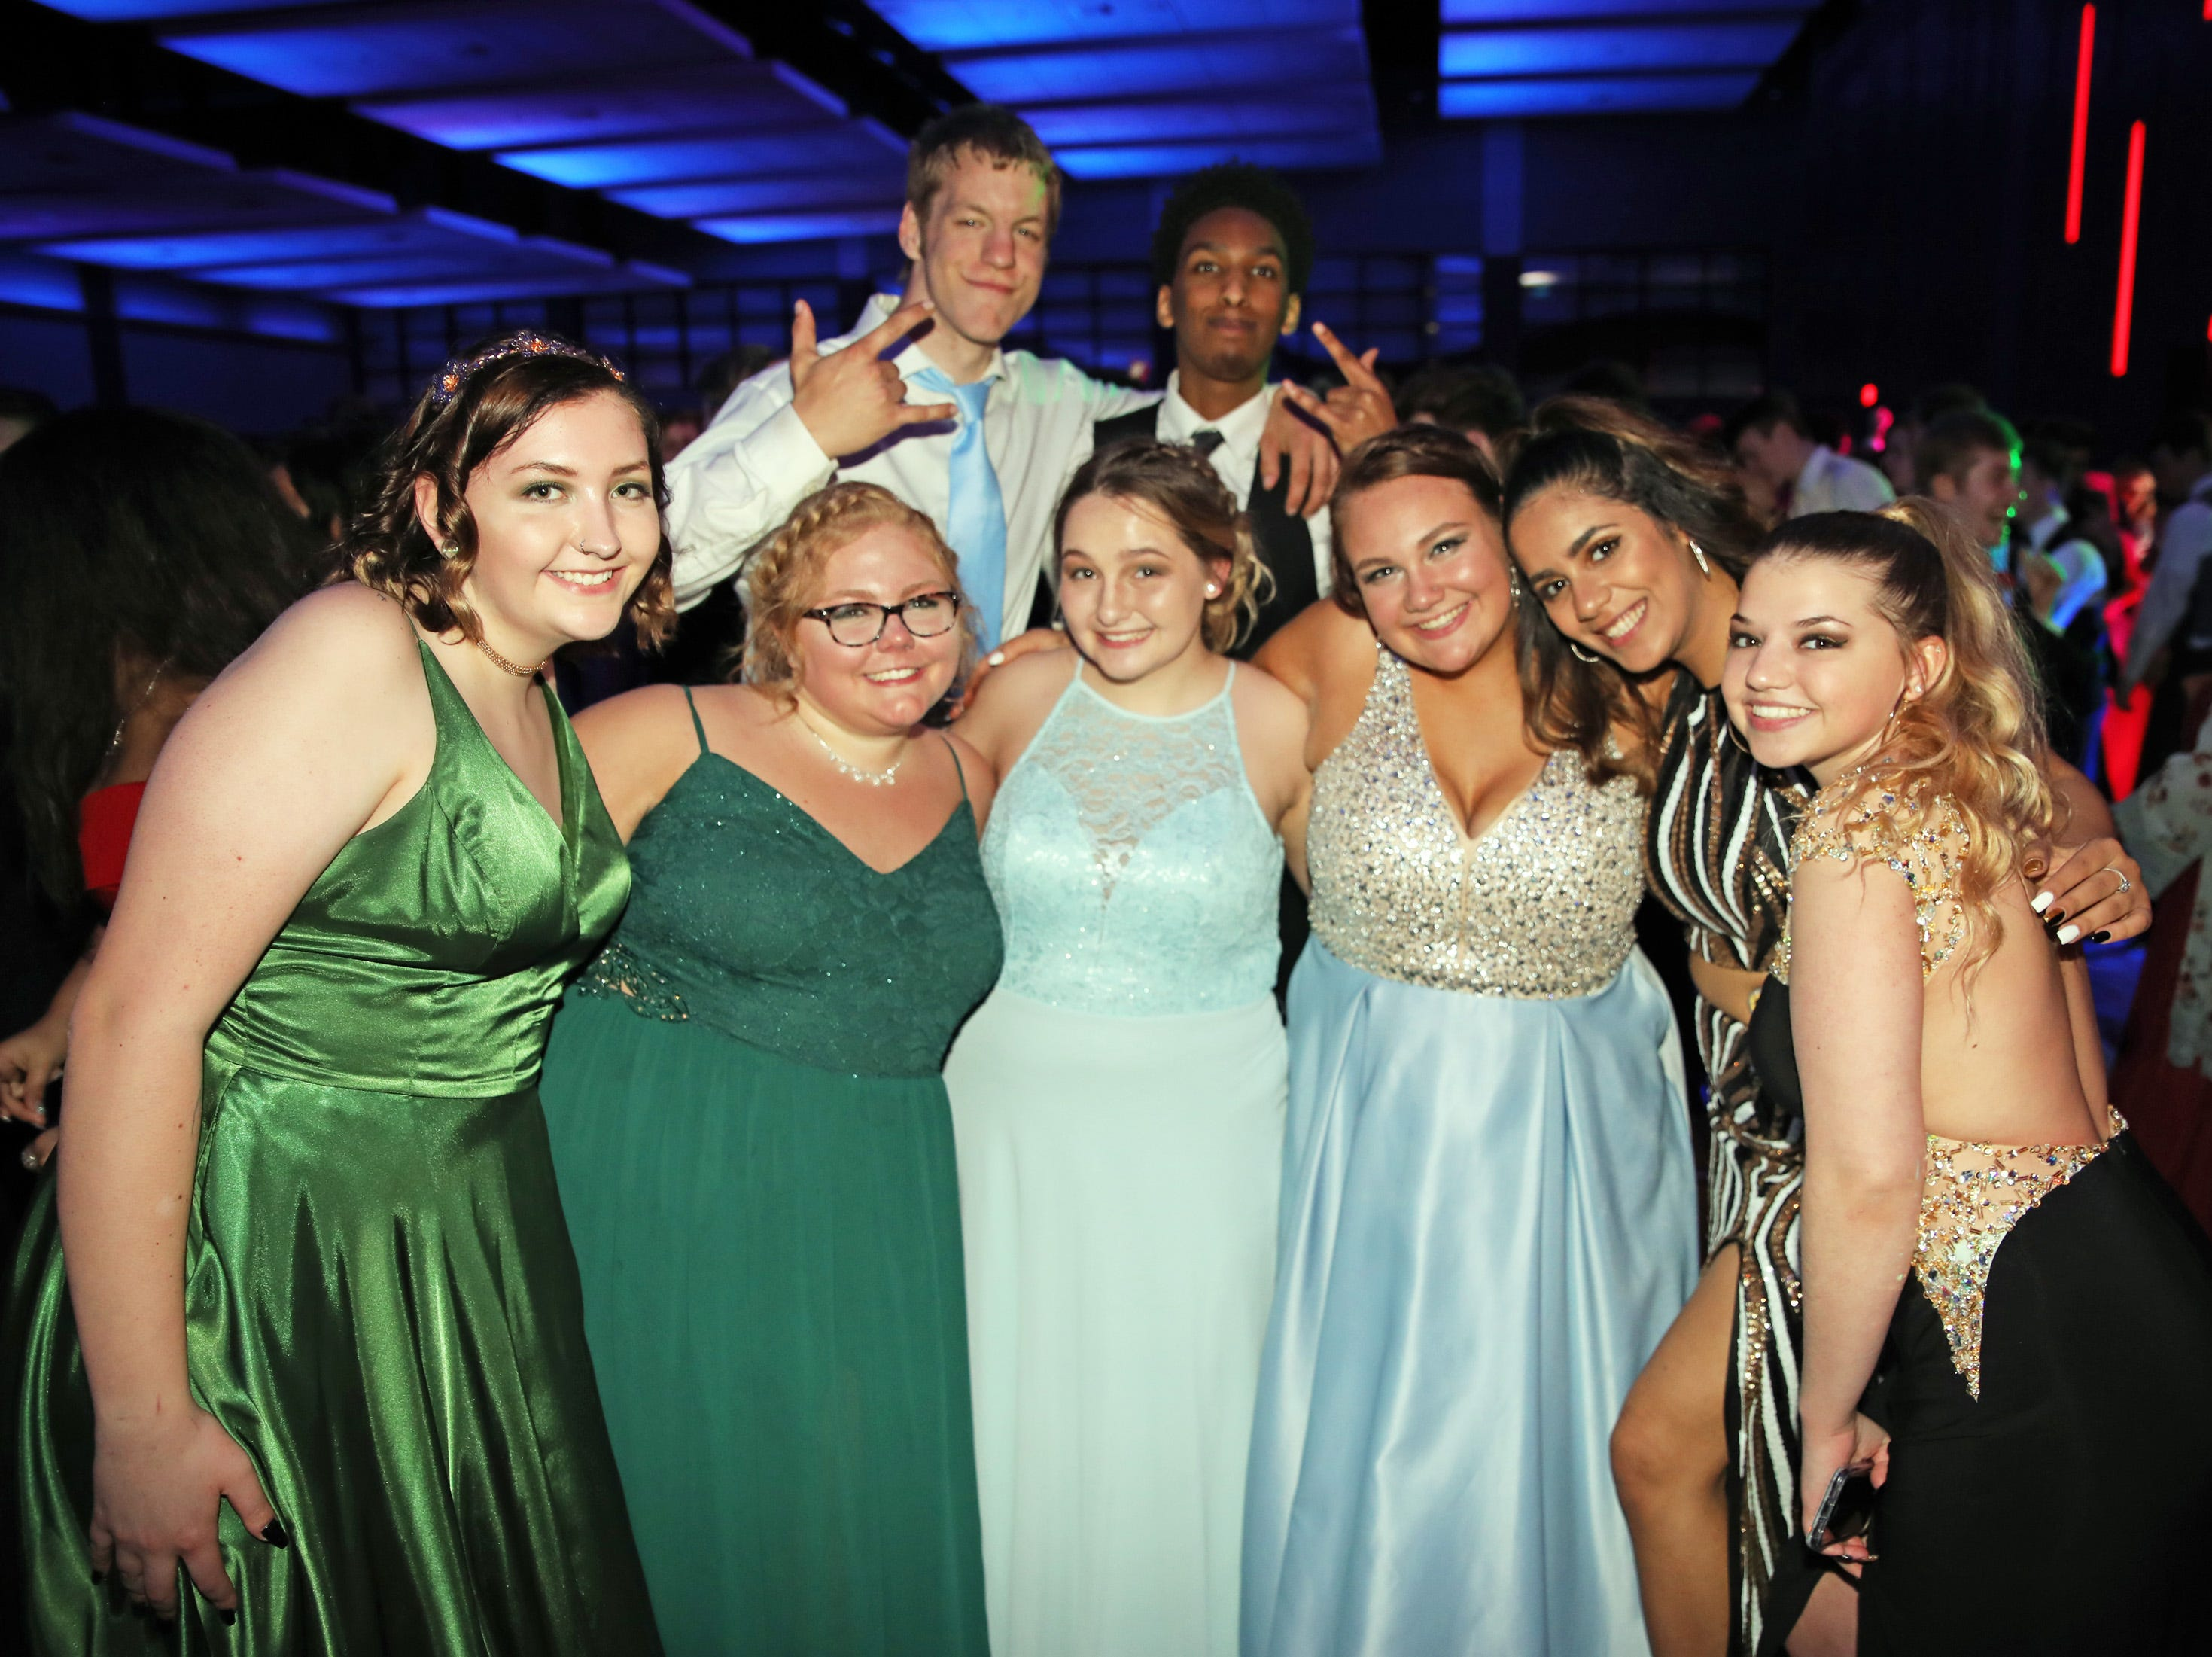 Warrior students stop for a group photo during the Waukee High School Prom at the Ron Pearson Center in West Des Moines on Saturday, April 6, 2019.